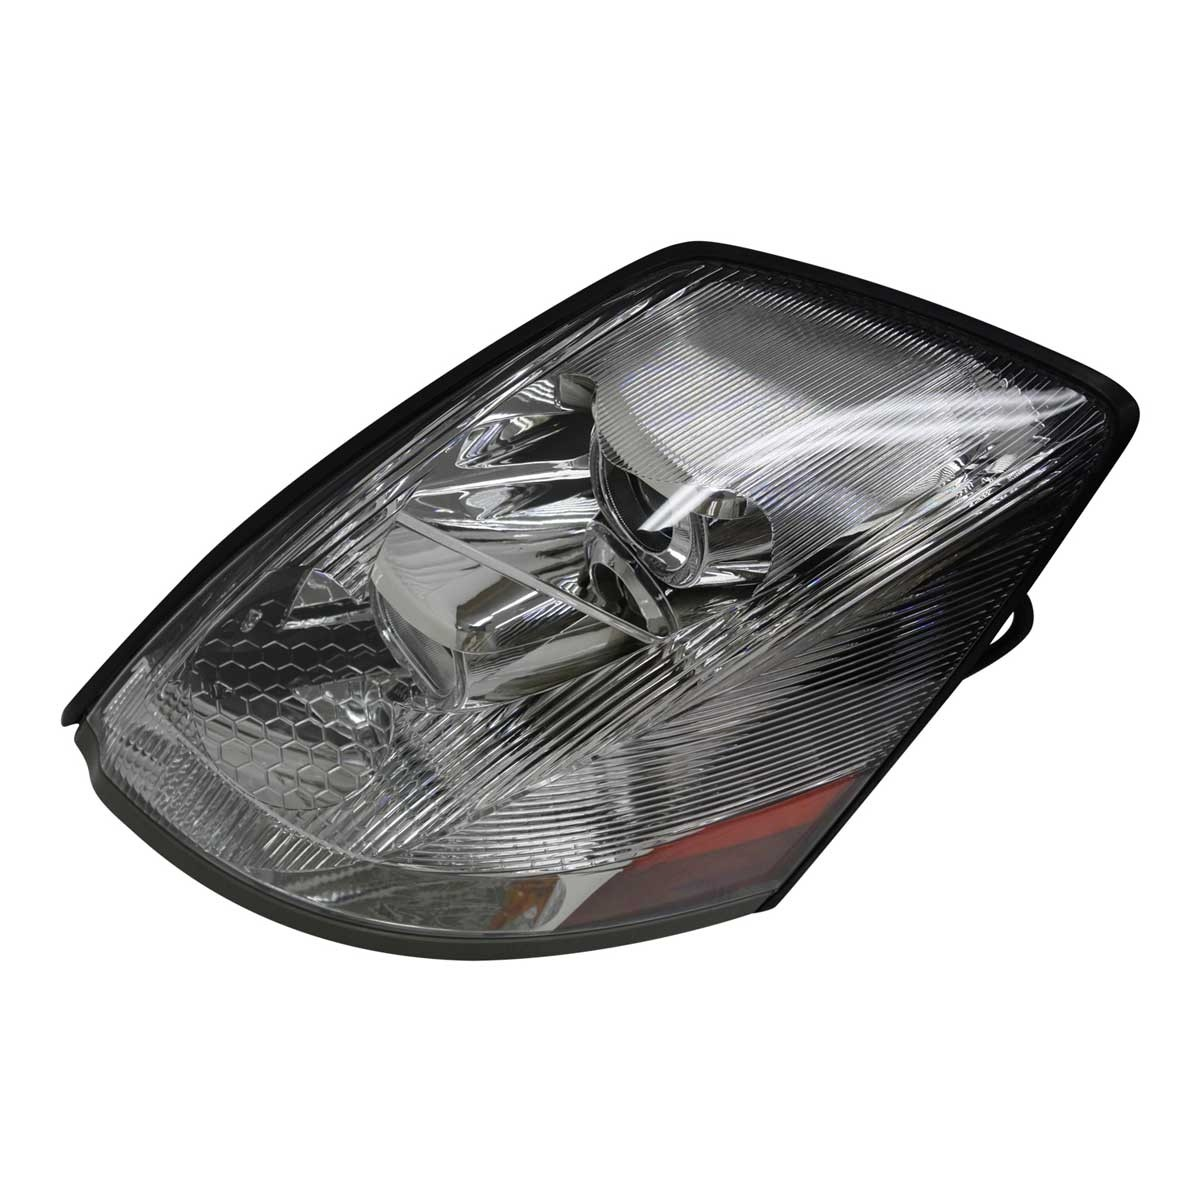 Volvo VN LED U-Bar Headlight Assembly Driver Side View.